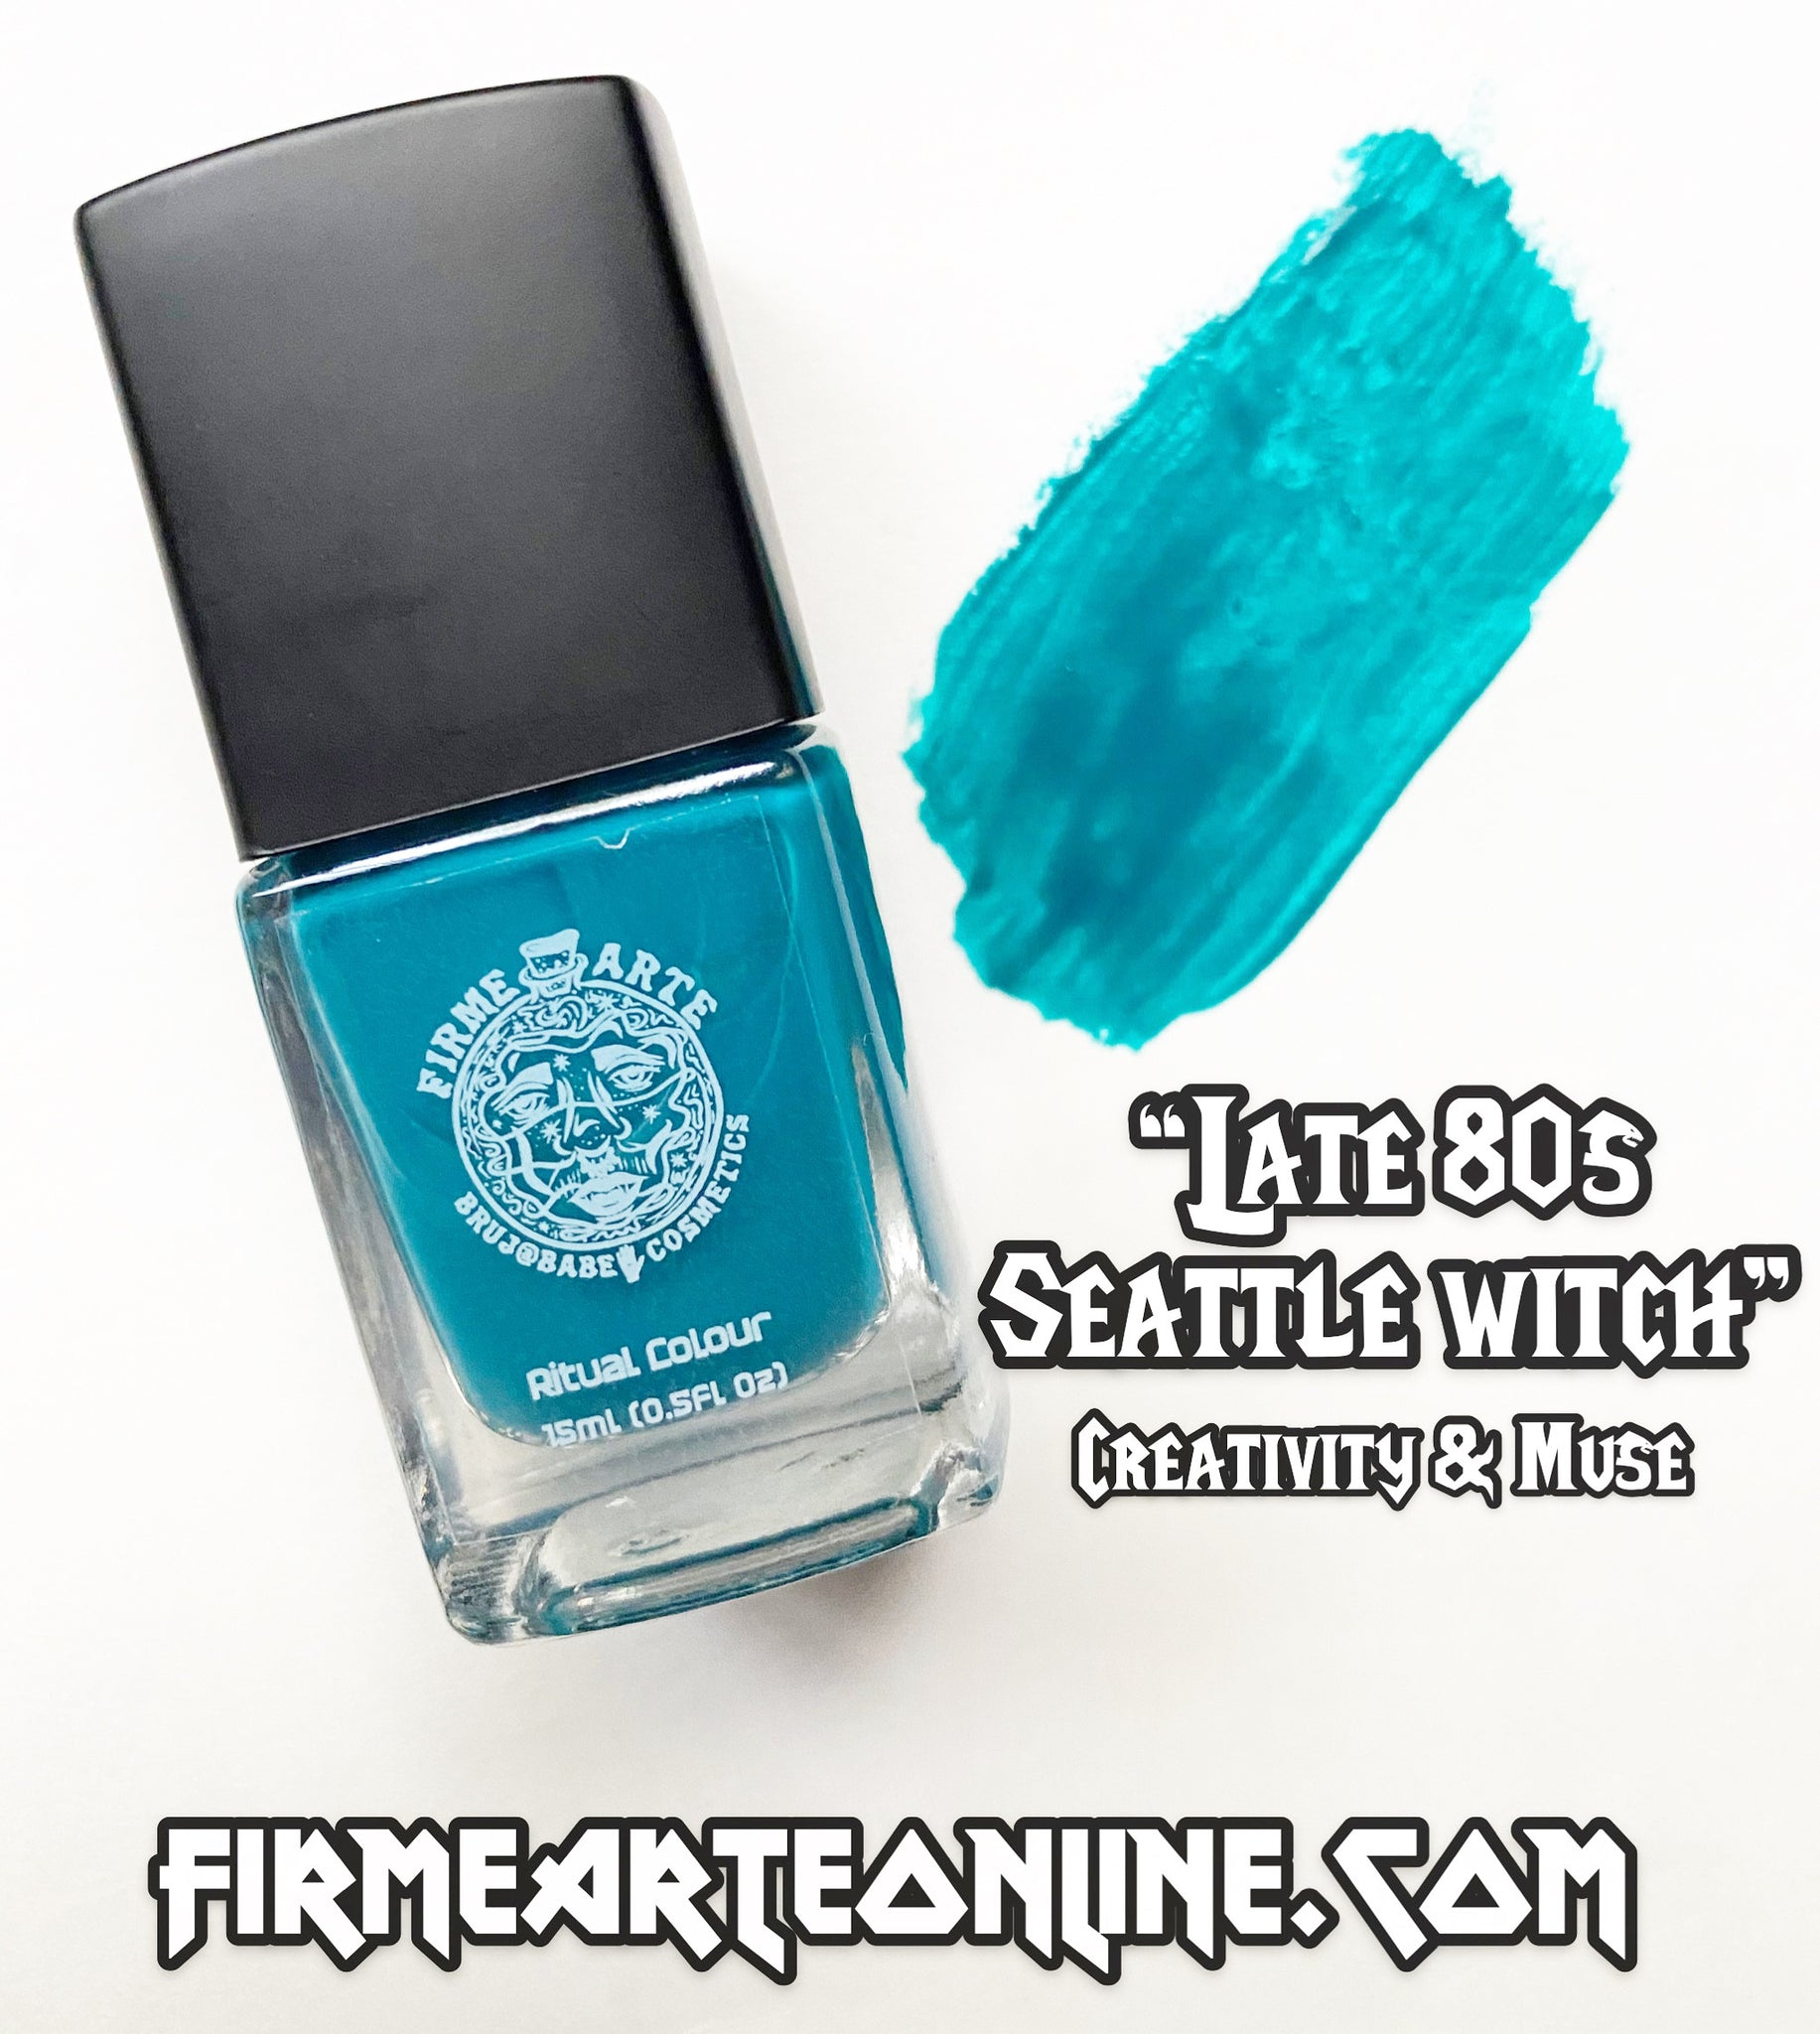 Nail Worship | Crystal Infused | Ritual Colour | Late 80s Seattle Witch